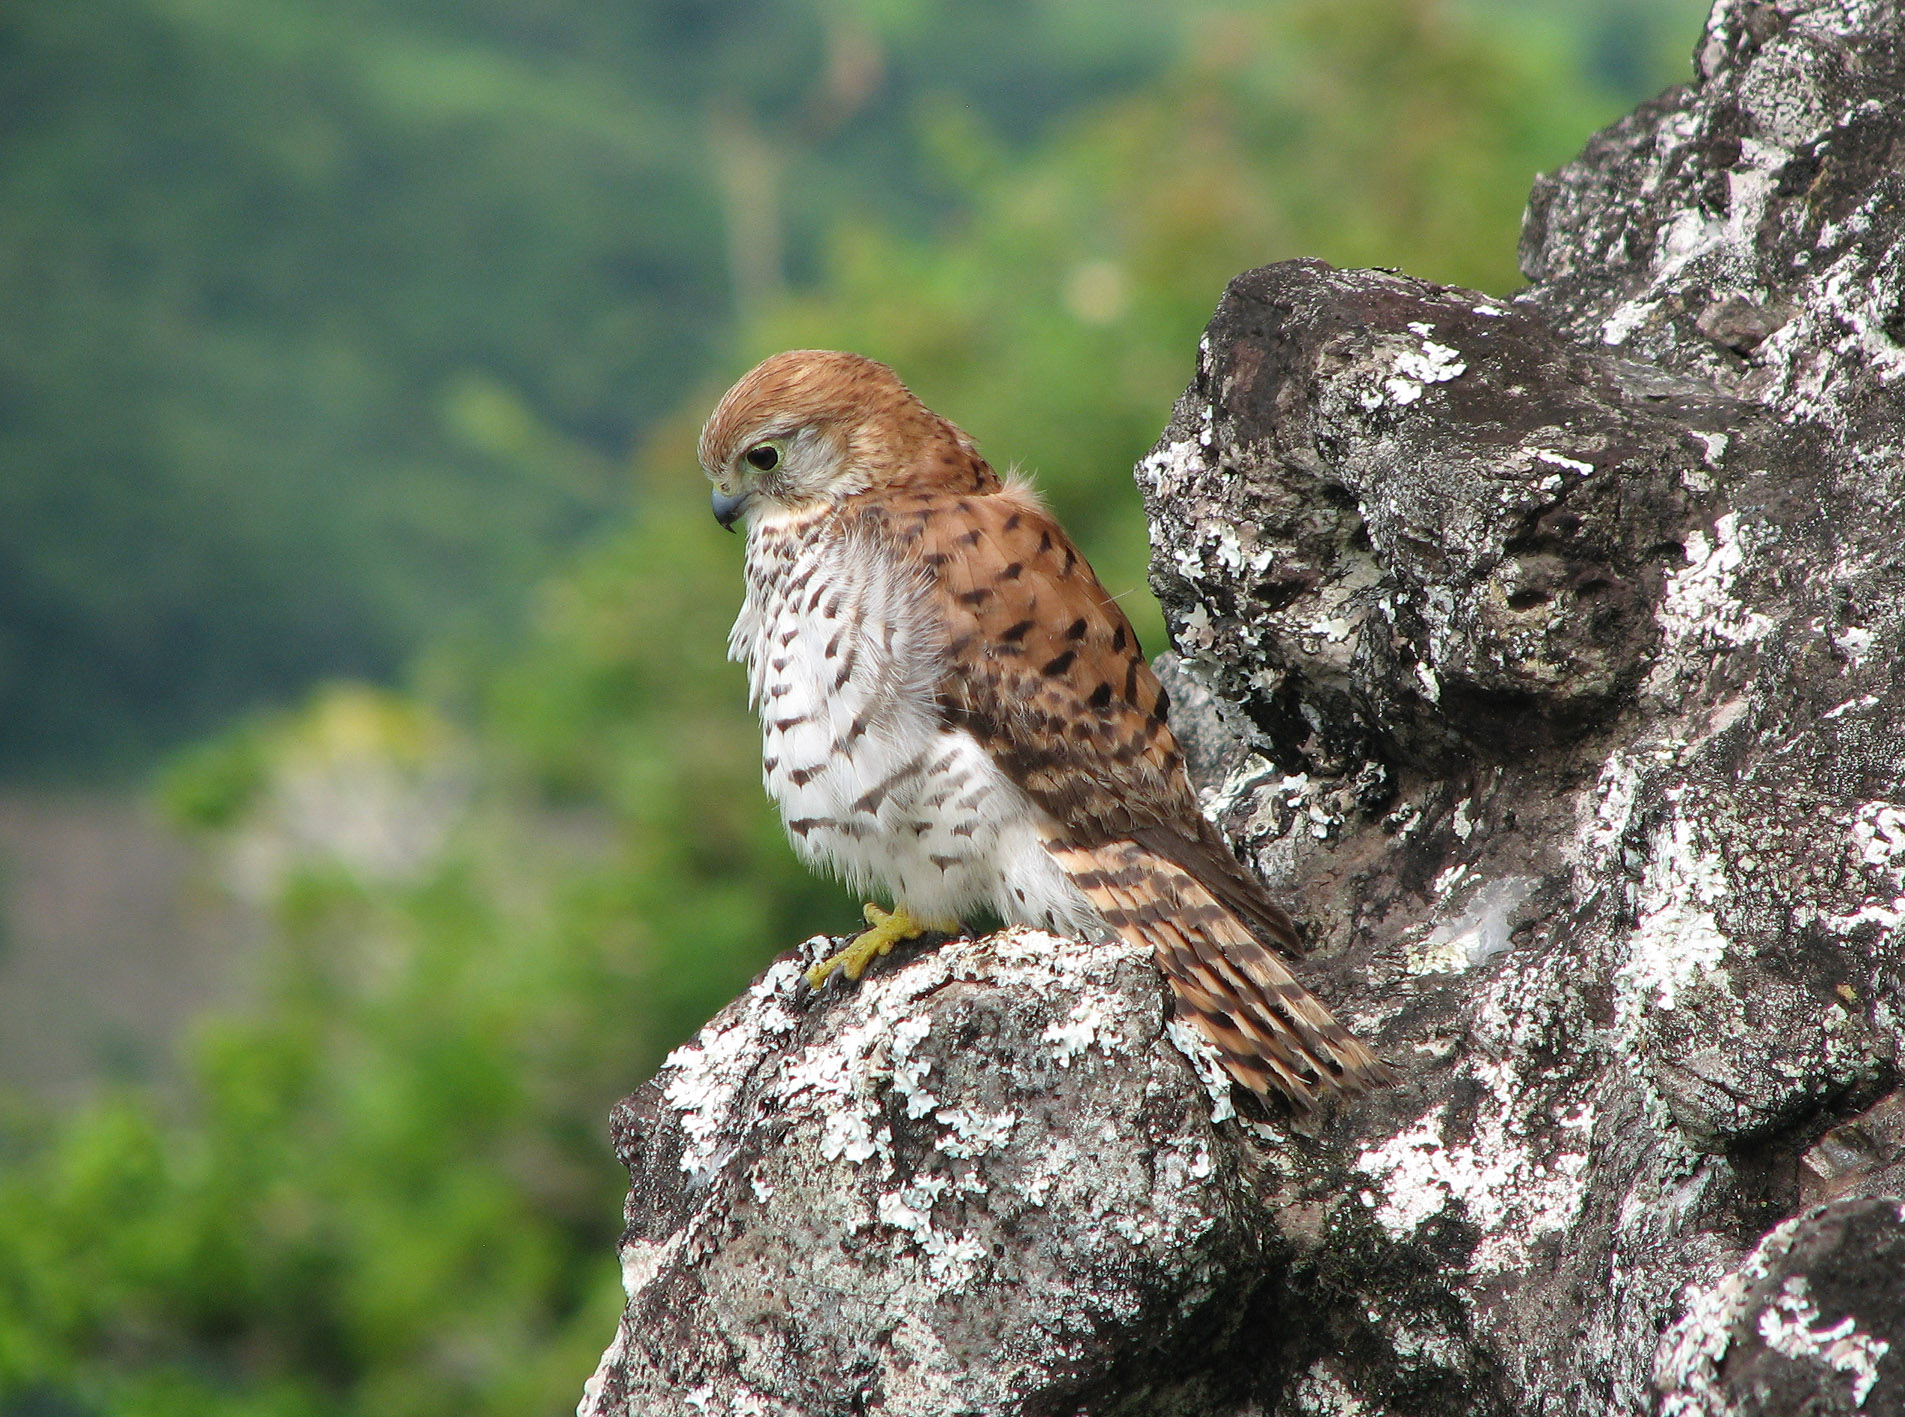 Carl Jones's efforts boosted Mauritius kestrel nubers from 4 in the 1970s to more than 300 in a decade. Photo by Sam Cartwright, courtesy of Indianapolis Prize.